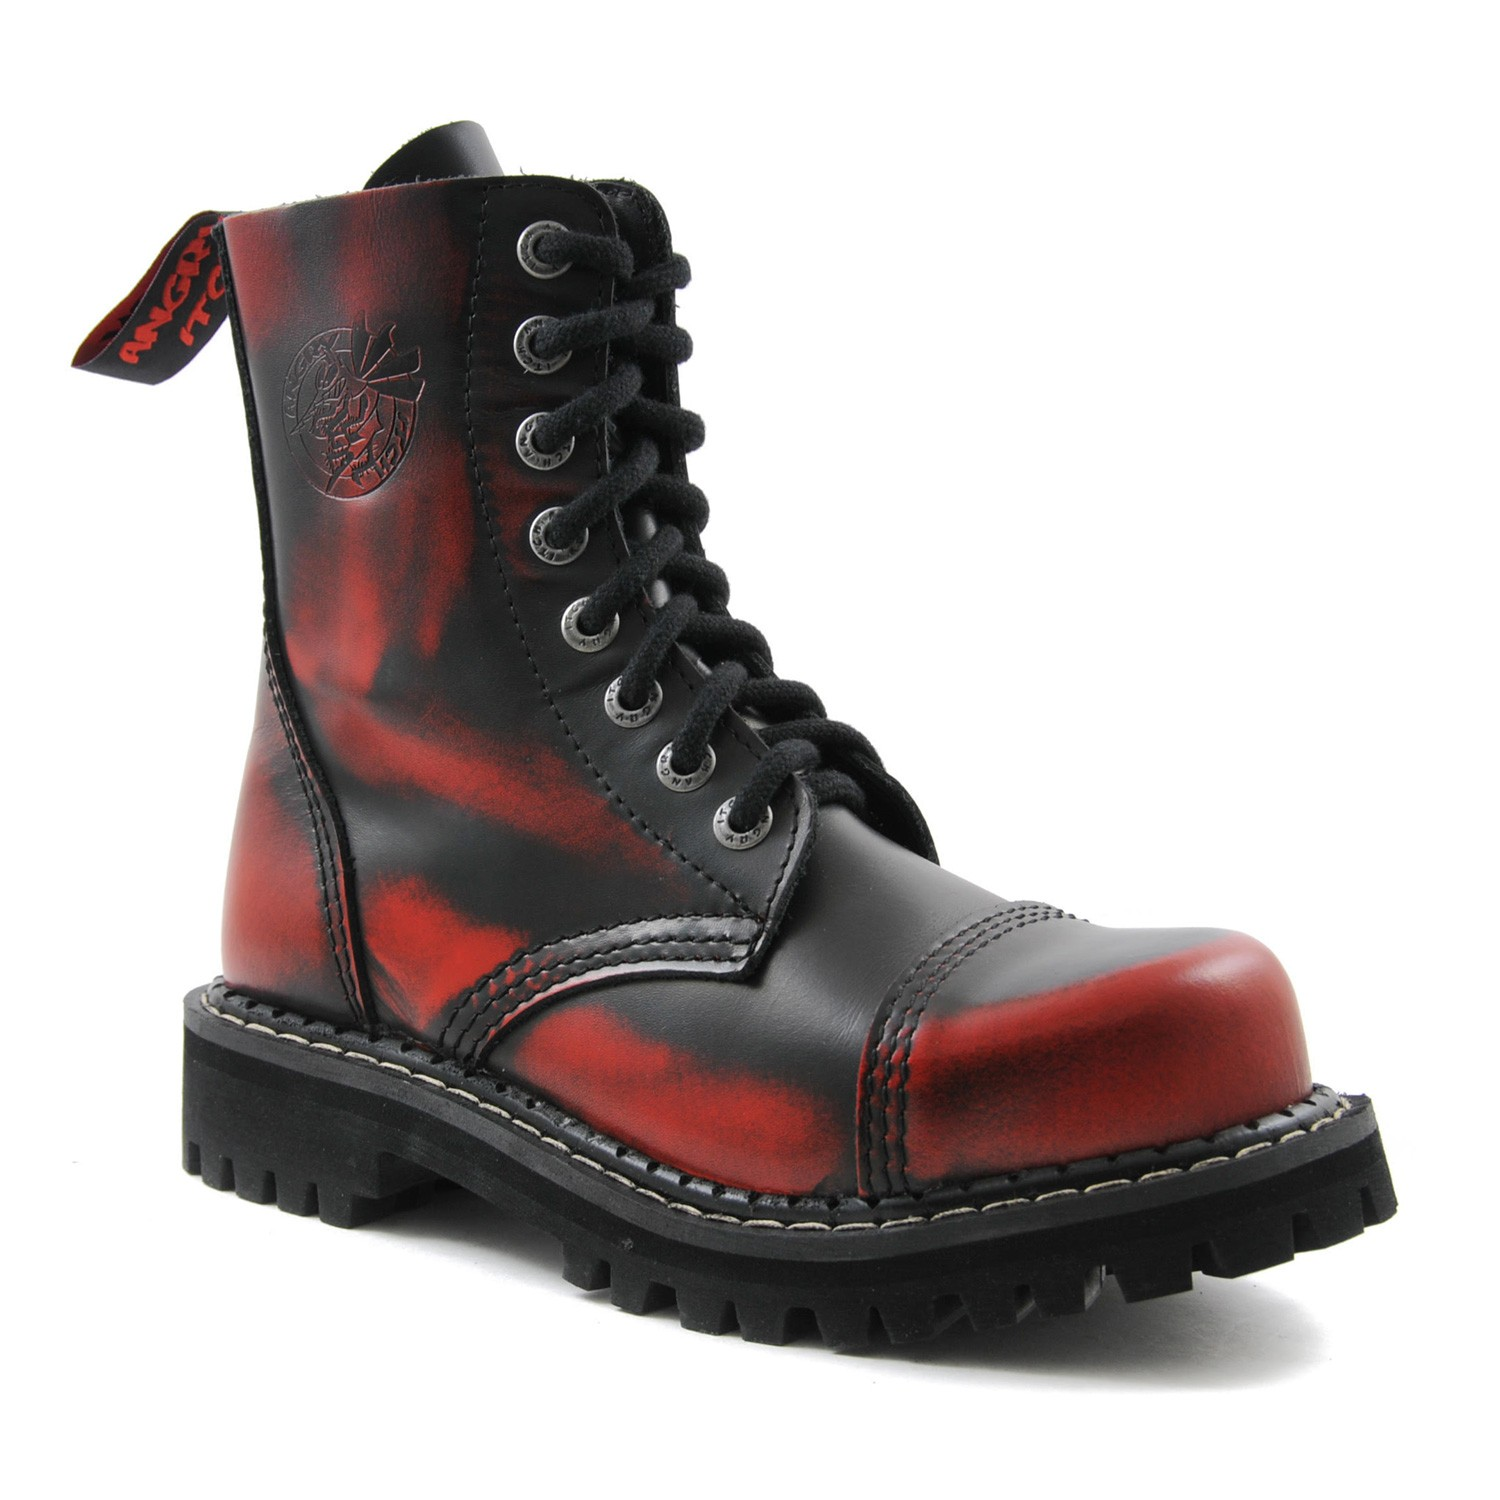 Angry Itch - 8-Loch Gothic Punk Army Ranger Armee Rot Rub-Off Leder Stiefel mit Stahlkappe 36-48 - Made in EU!